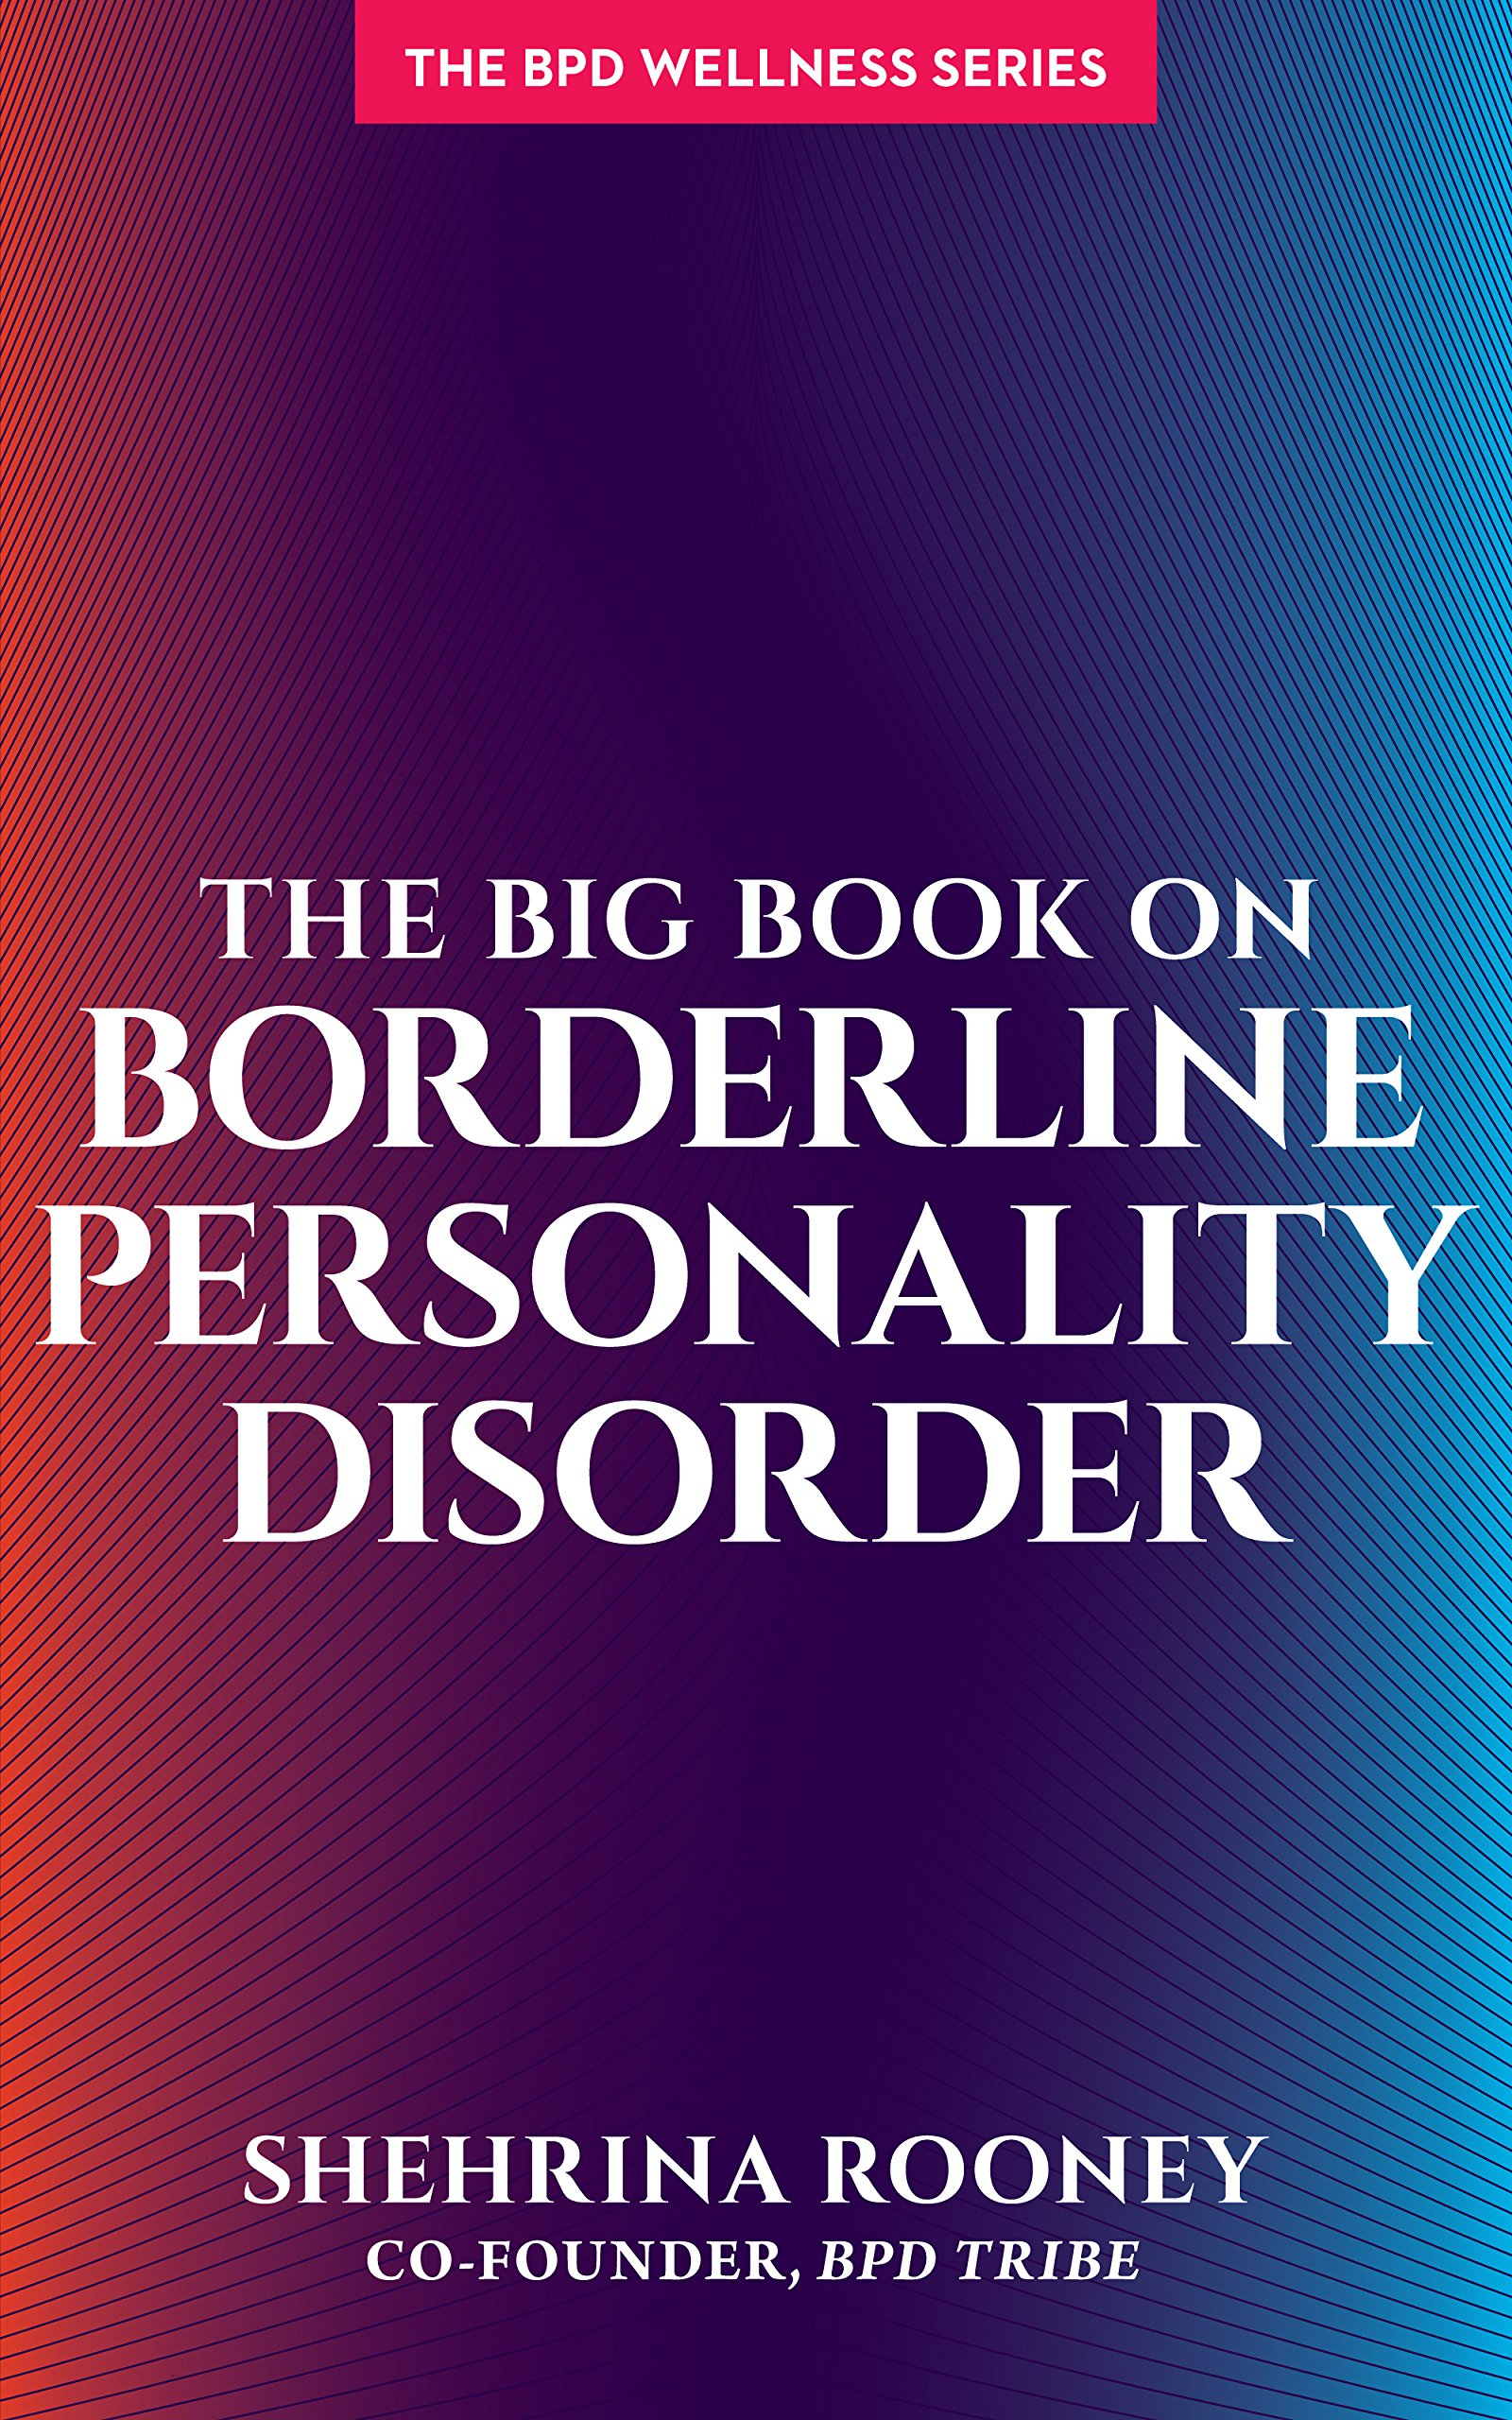 What Is Borderline Personality Disorder >> The Big Book On Borderline Personality Disorder Bpd Wellness